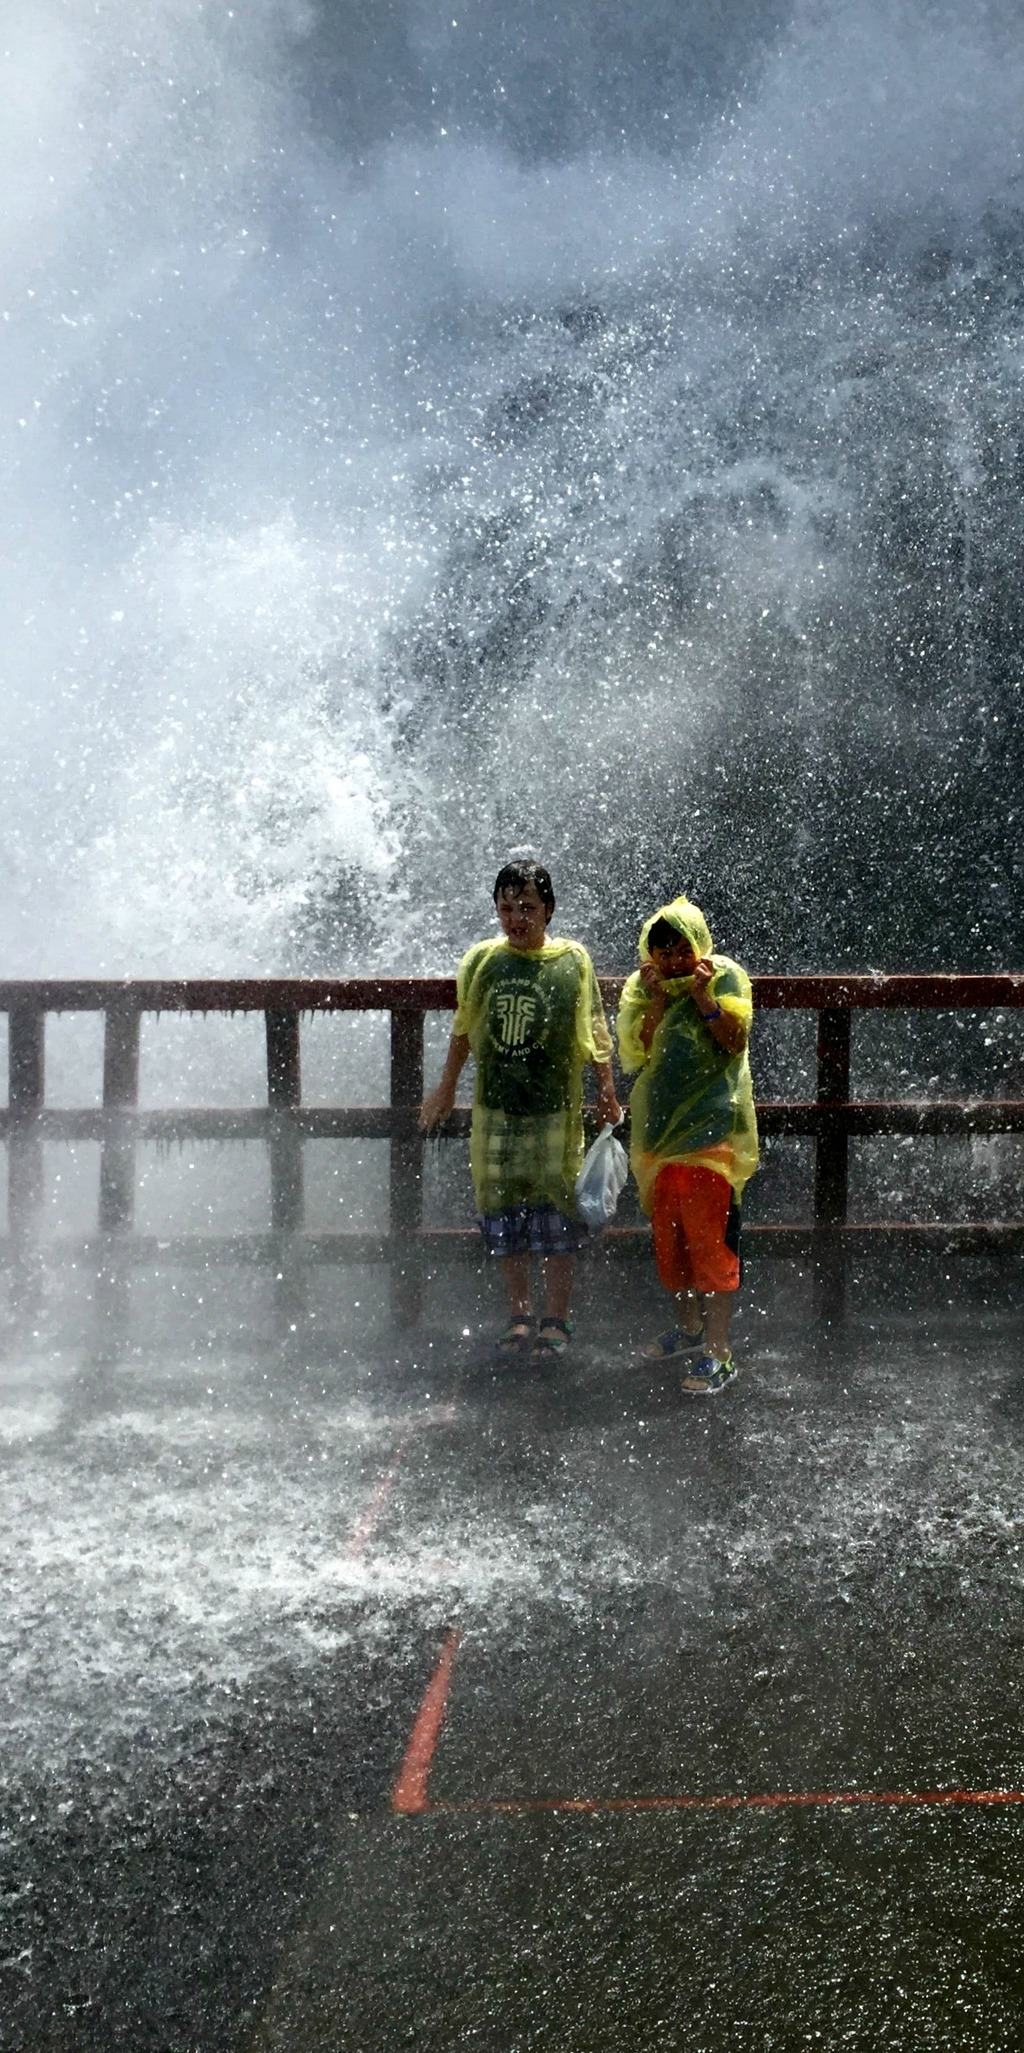 48 Hours In Niagara Falls With Kids Astounding Natural Beauty Spectacular Fireworks